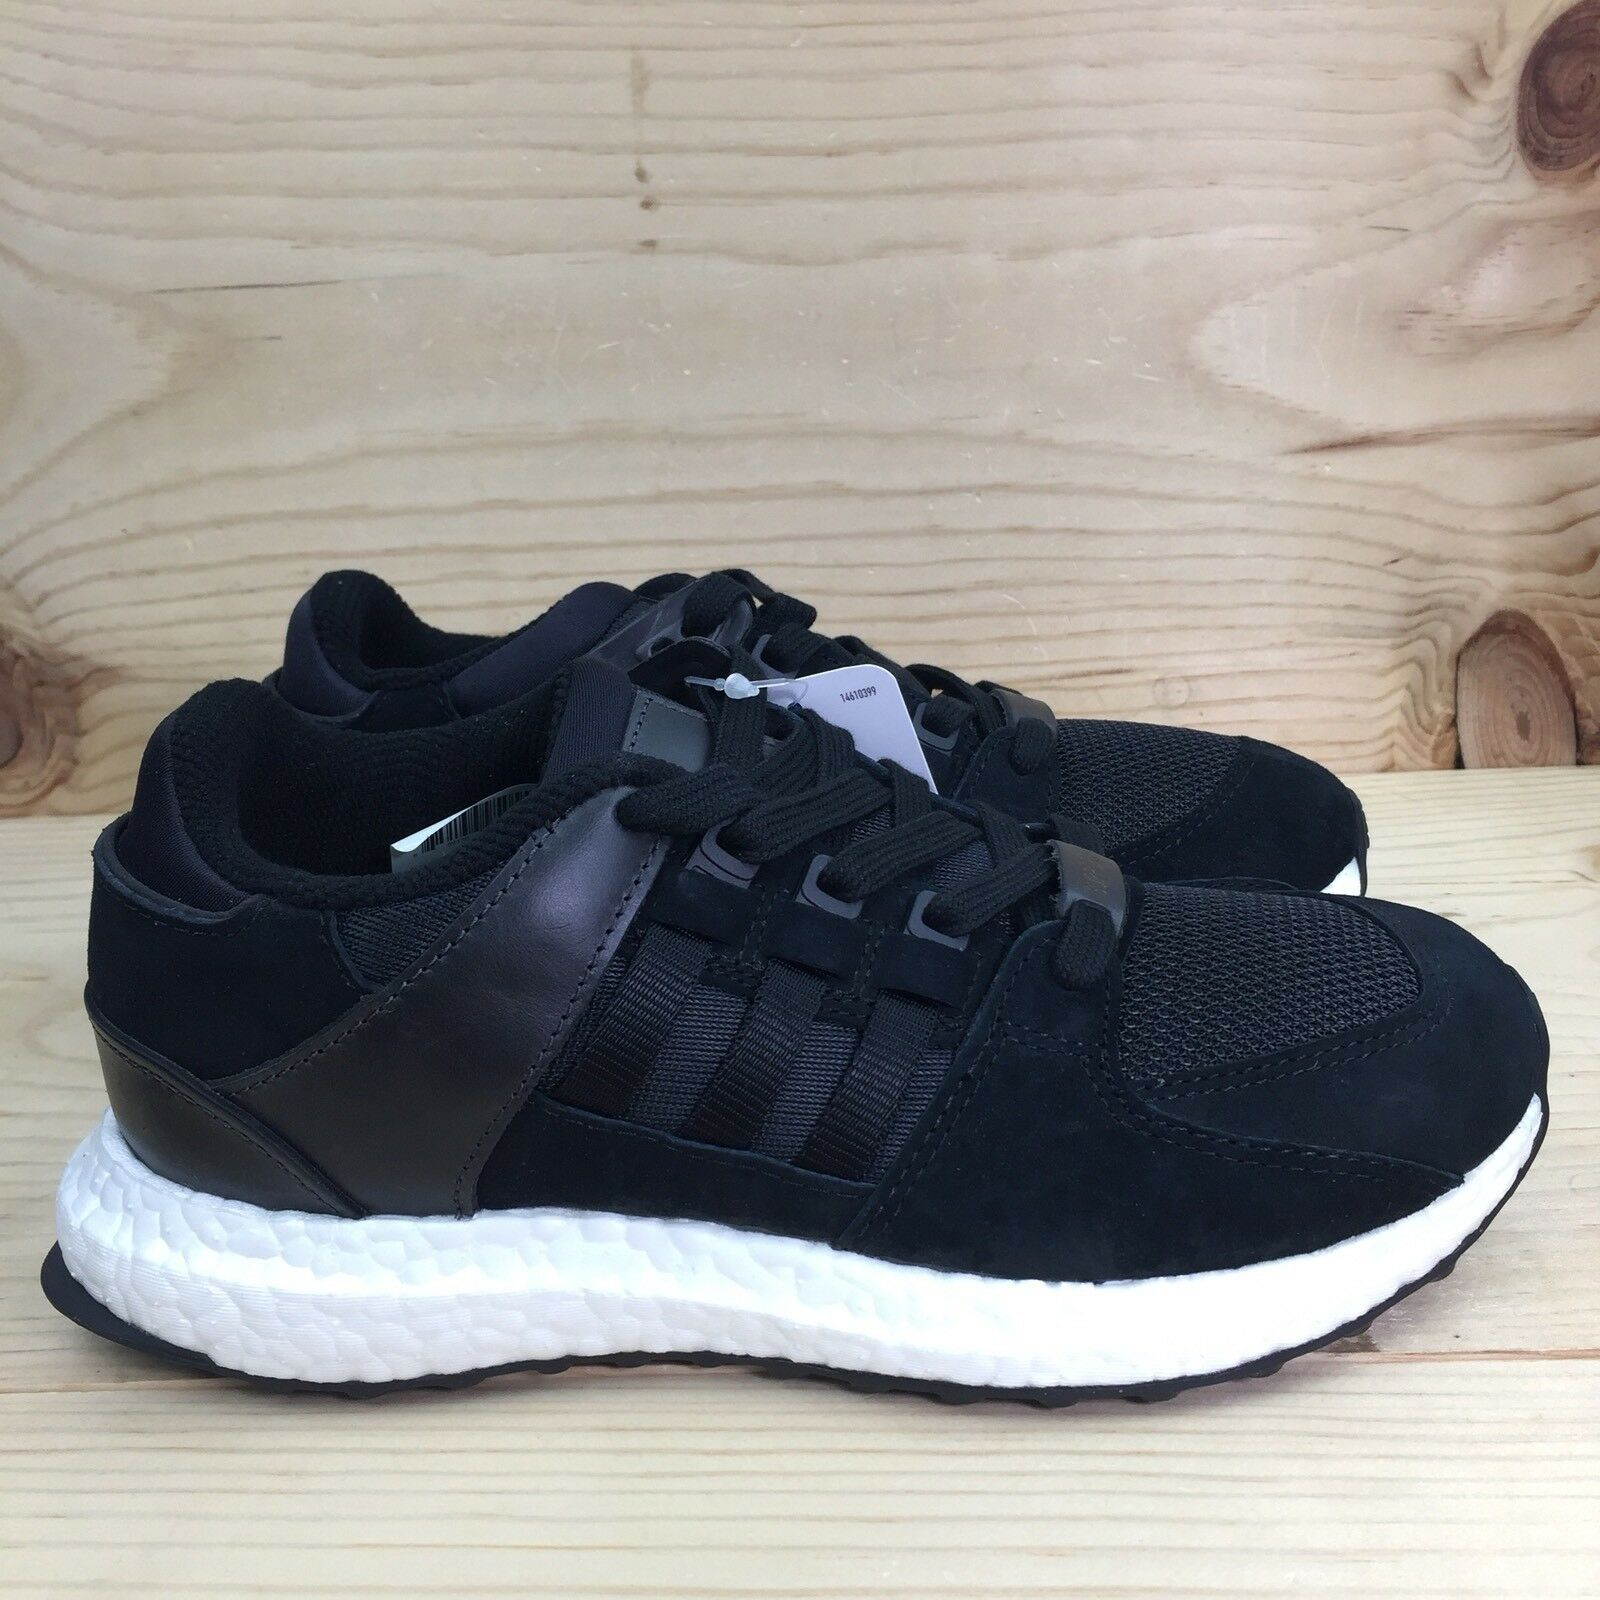 Adidas EQT Support Ultra Boost Mens Size 5 Womens Size 6 Black shoes